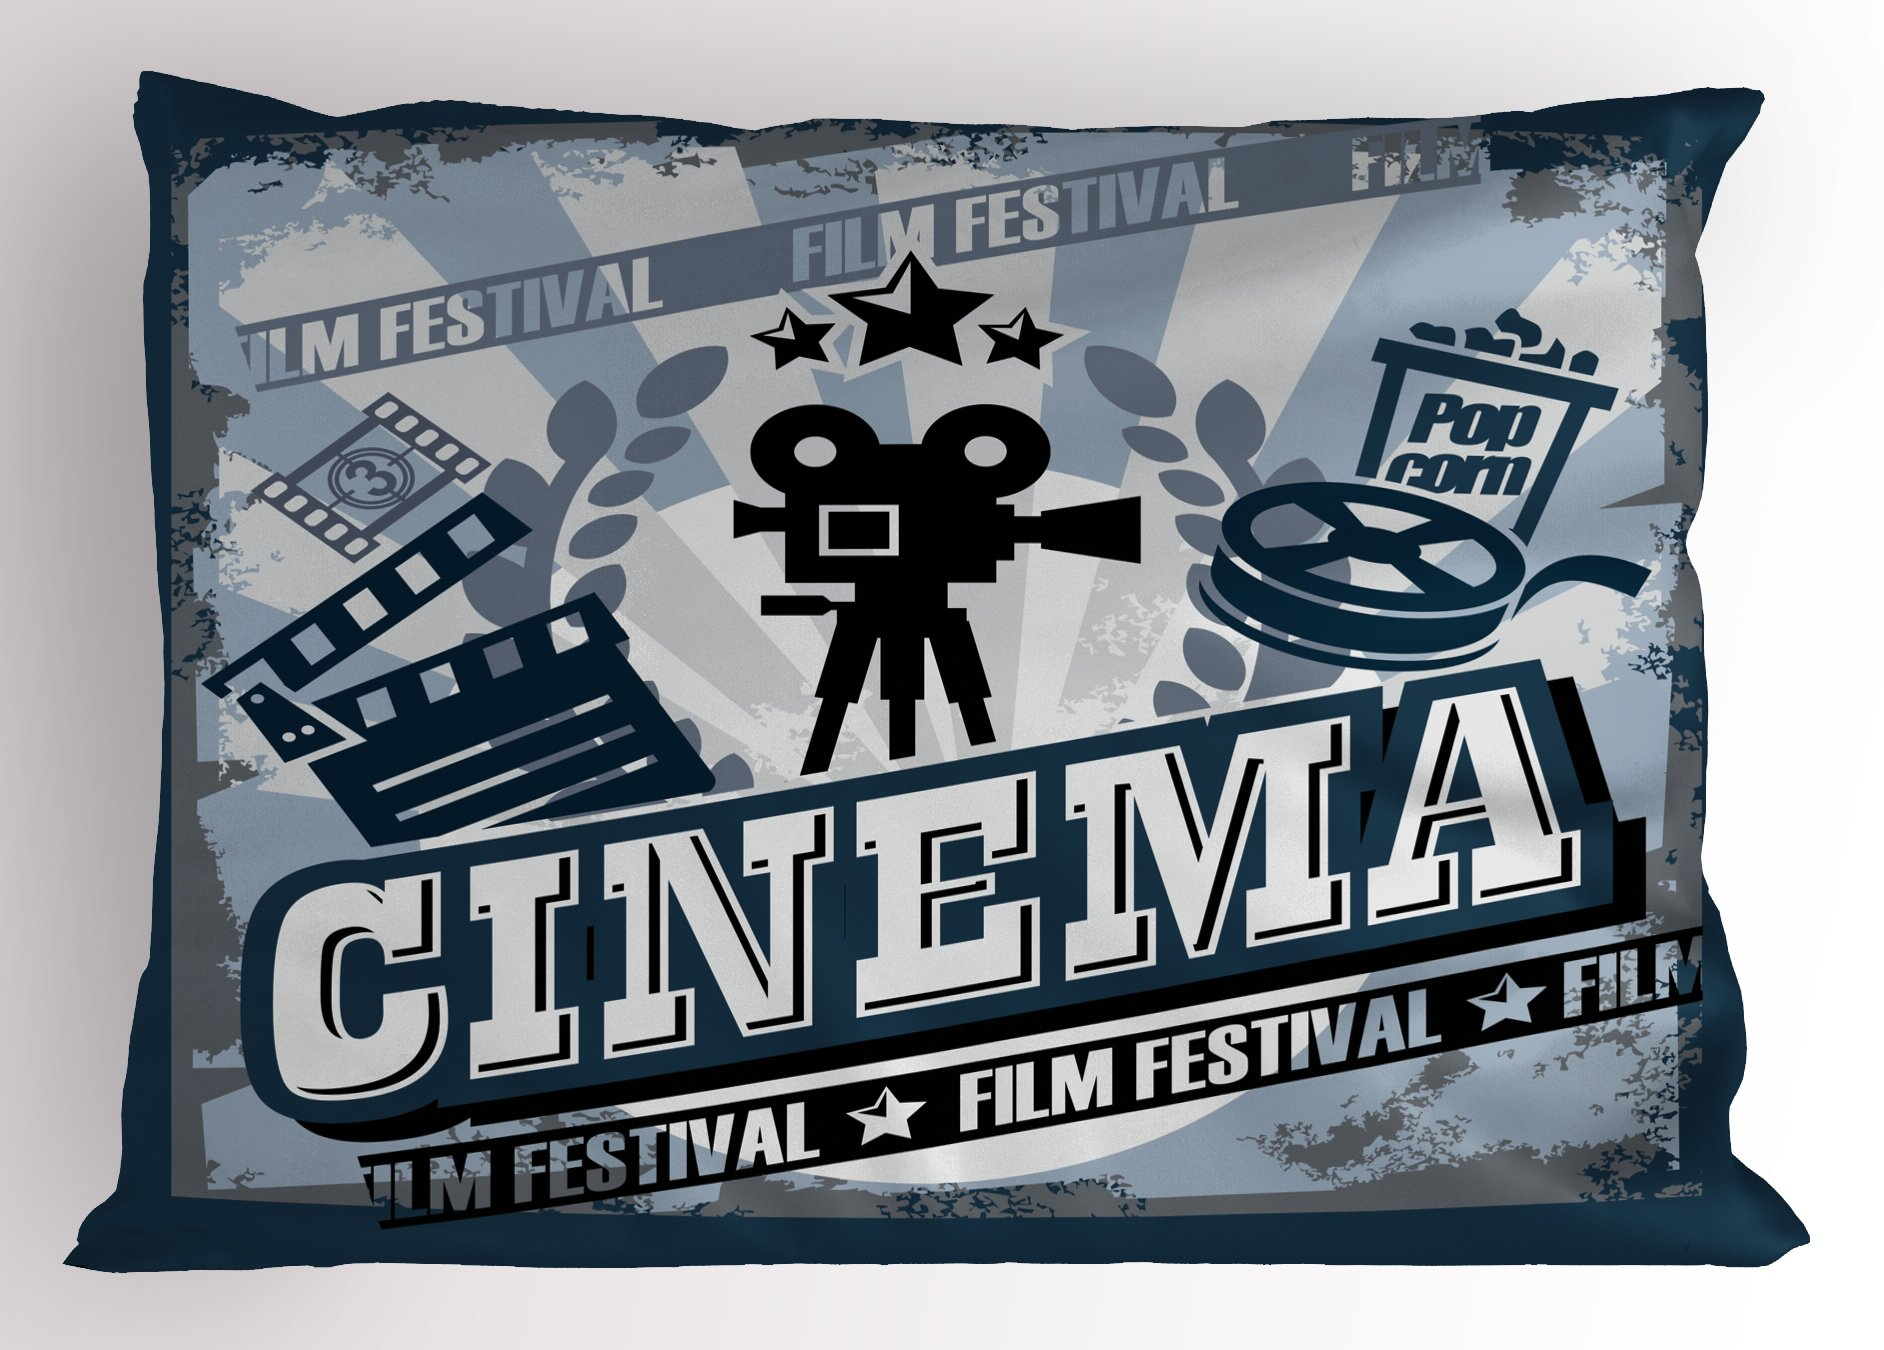 Ambesonne Movie Theater Pillow Sham, Vintage Cinema Poster Design with Grunge Effect and Old Fashioned Icons, Decorative Standard King Size Printed Pillowcase, 36 X 20 Inches, Blue Black Grey